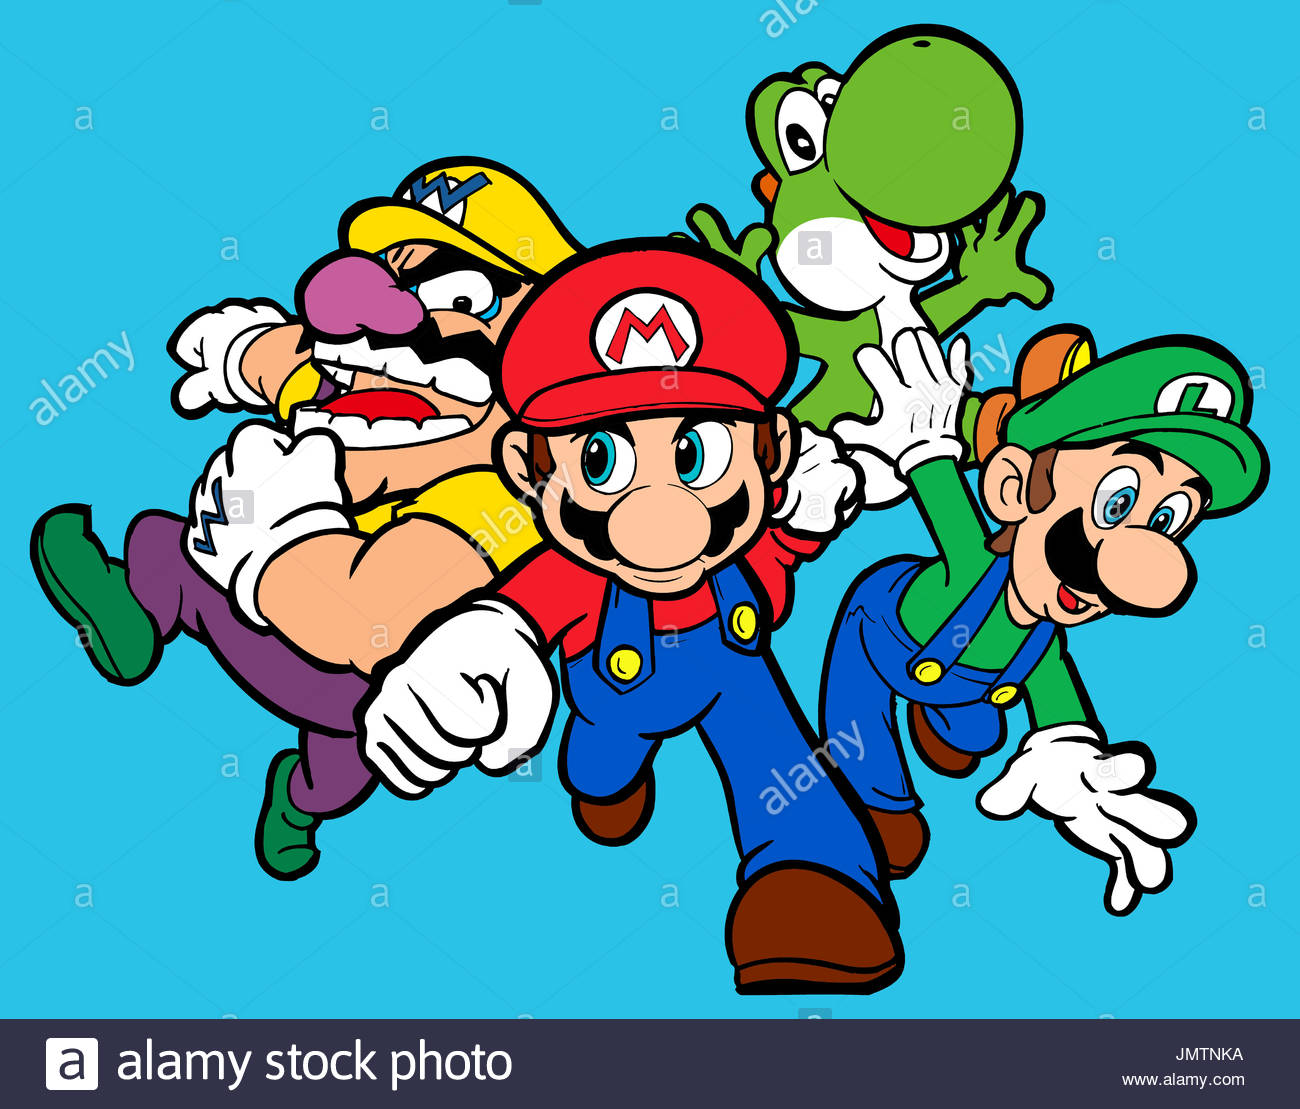 Mario Bros Stock Photos & Mario Bros Stock Images - Alamy